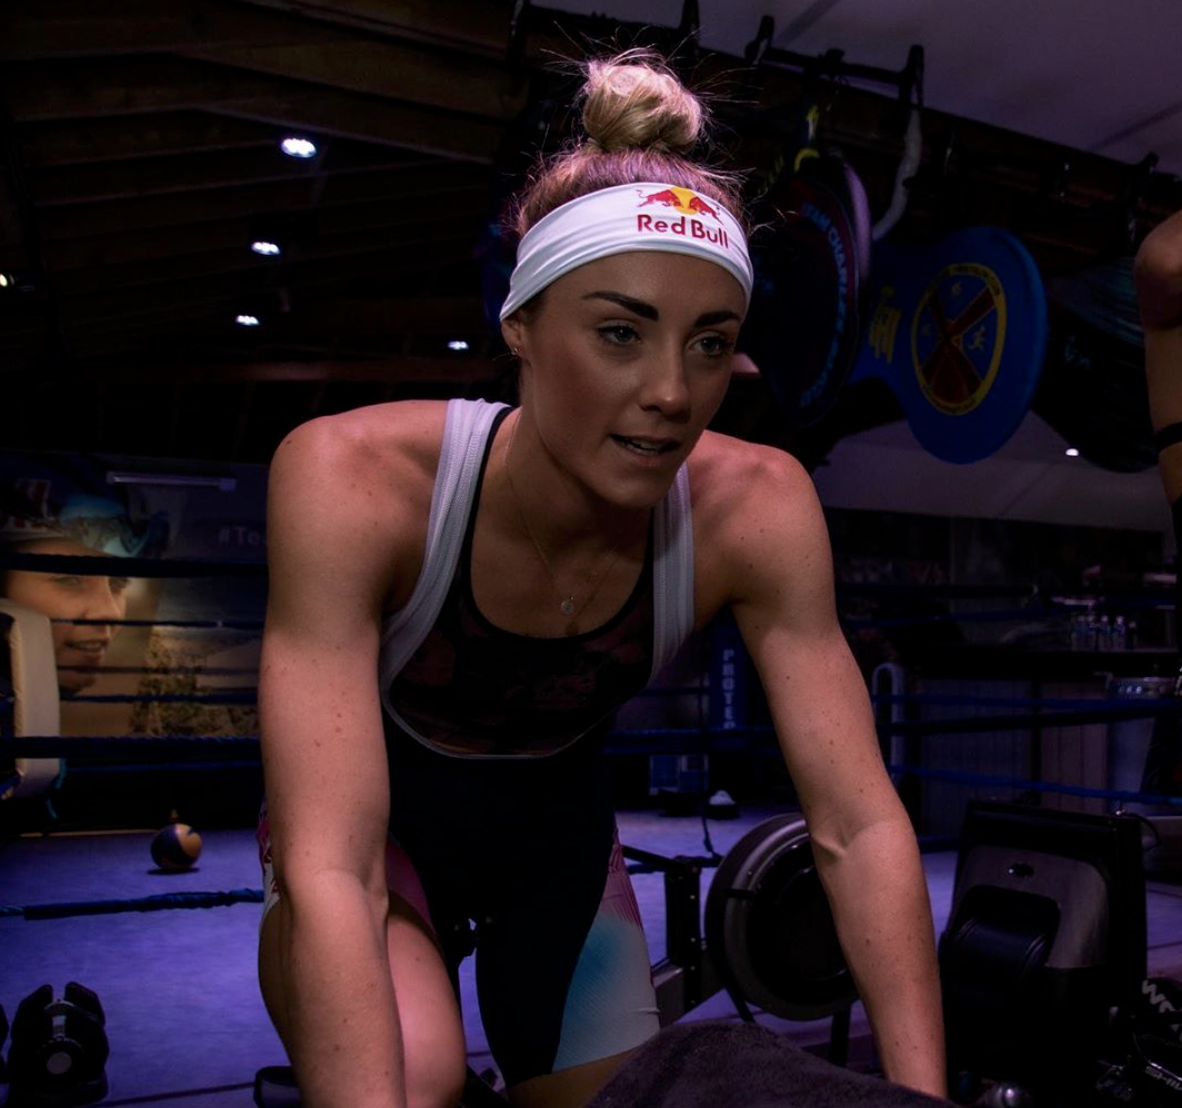 Lucy Charles-Barclay Super League Triathlon SLT Arena Games Powered by Zwift